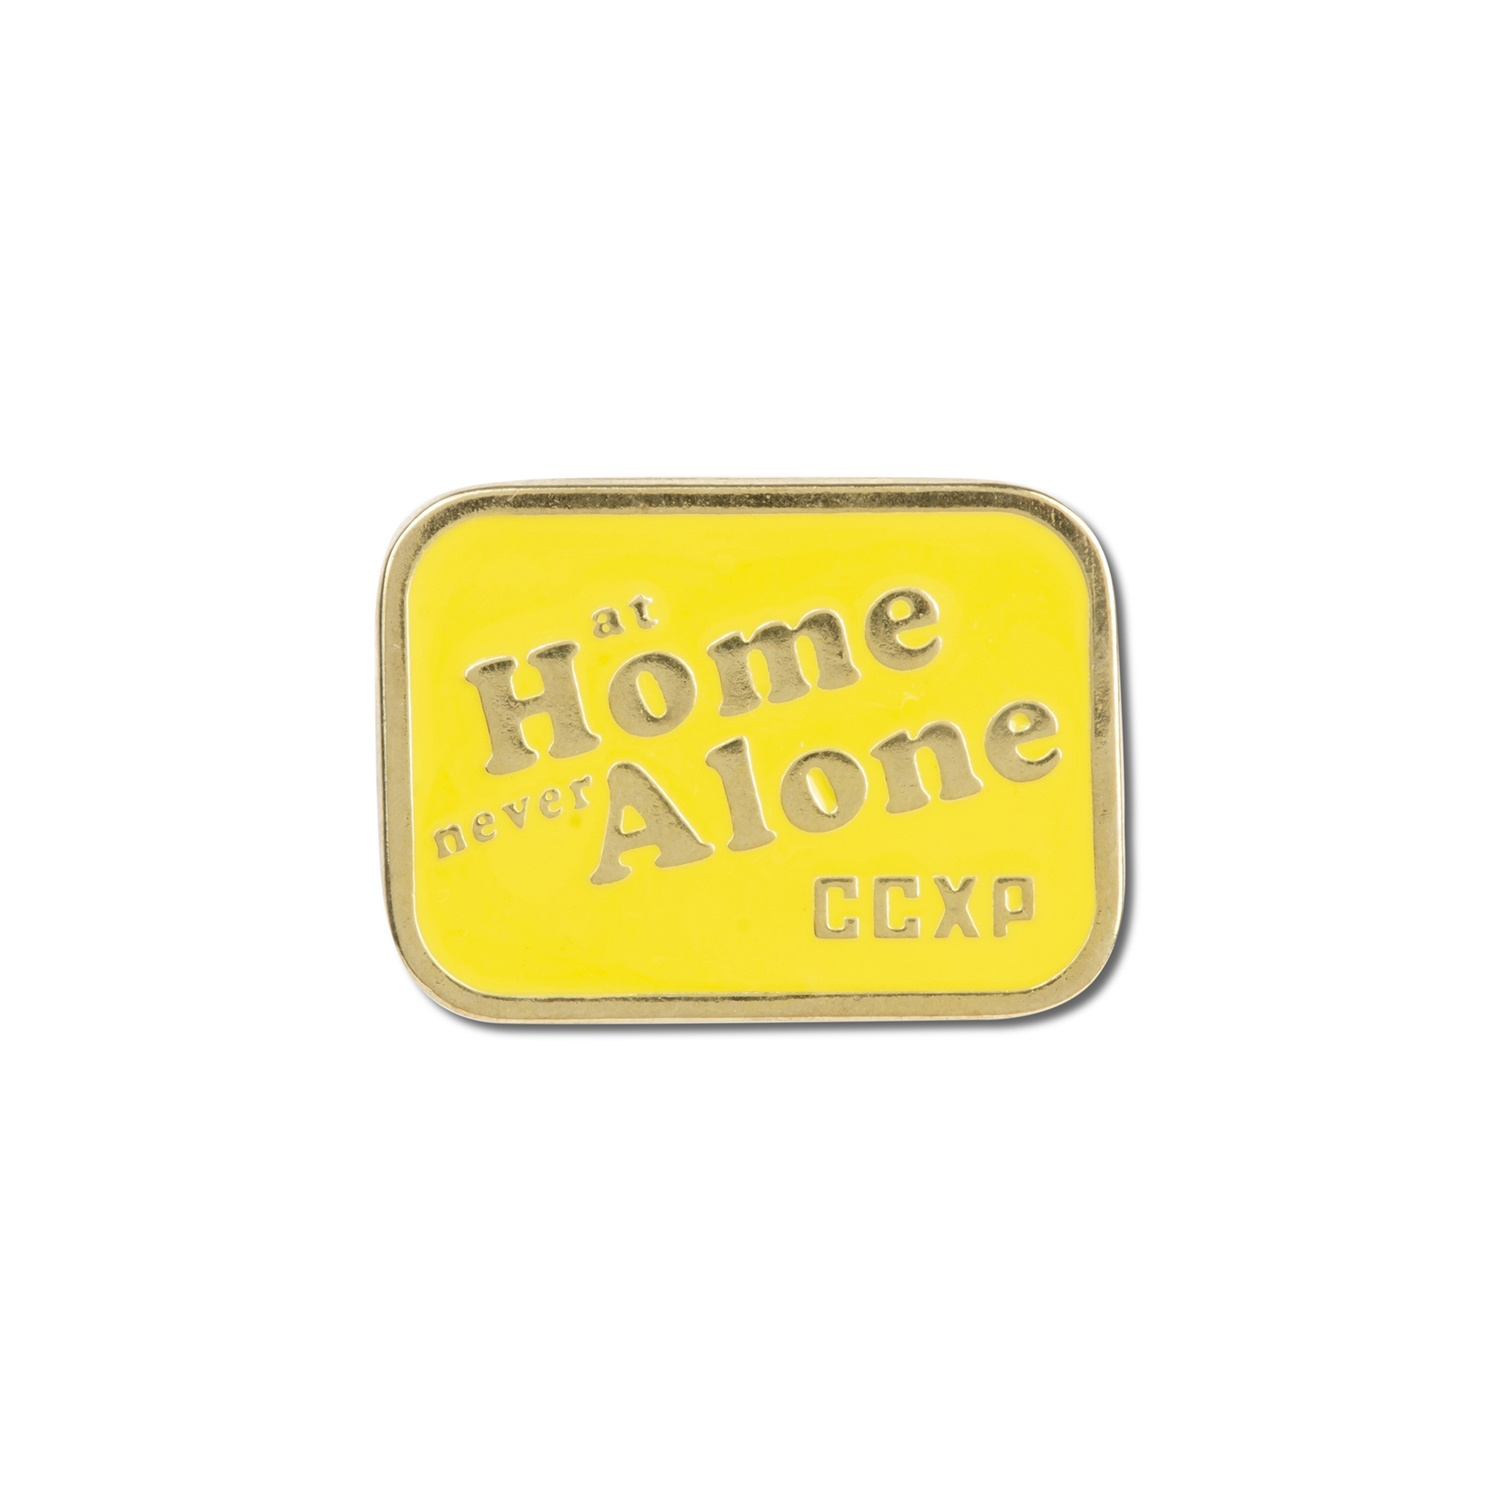 Pin At Home, Never Alone